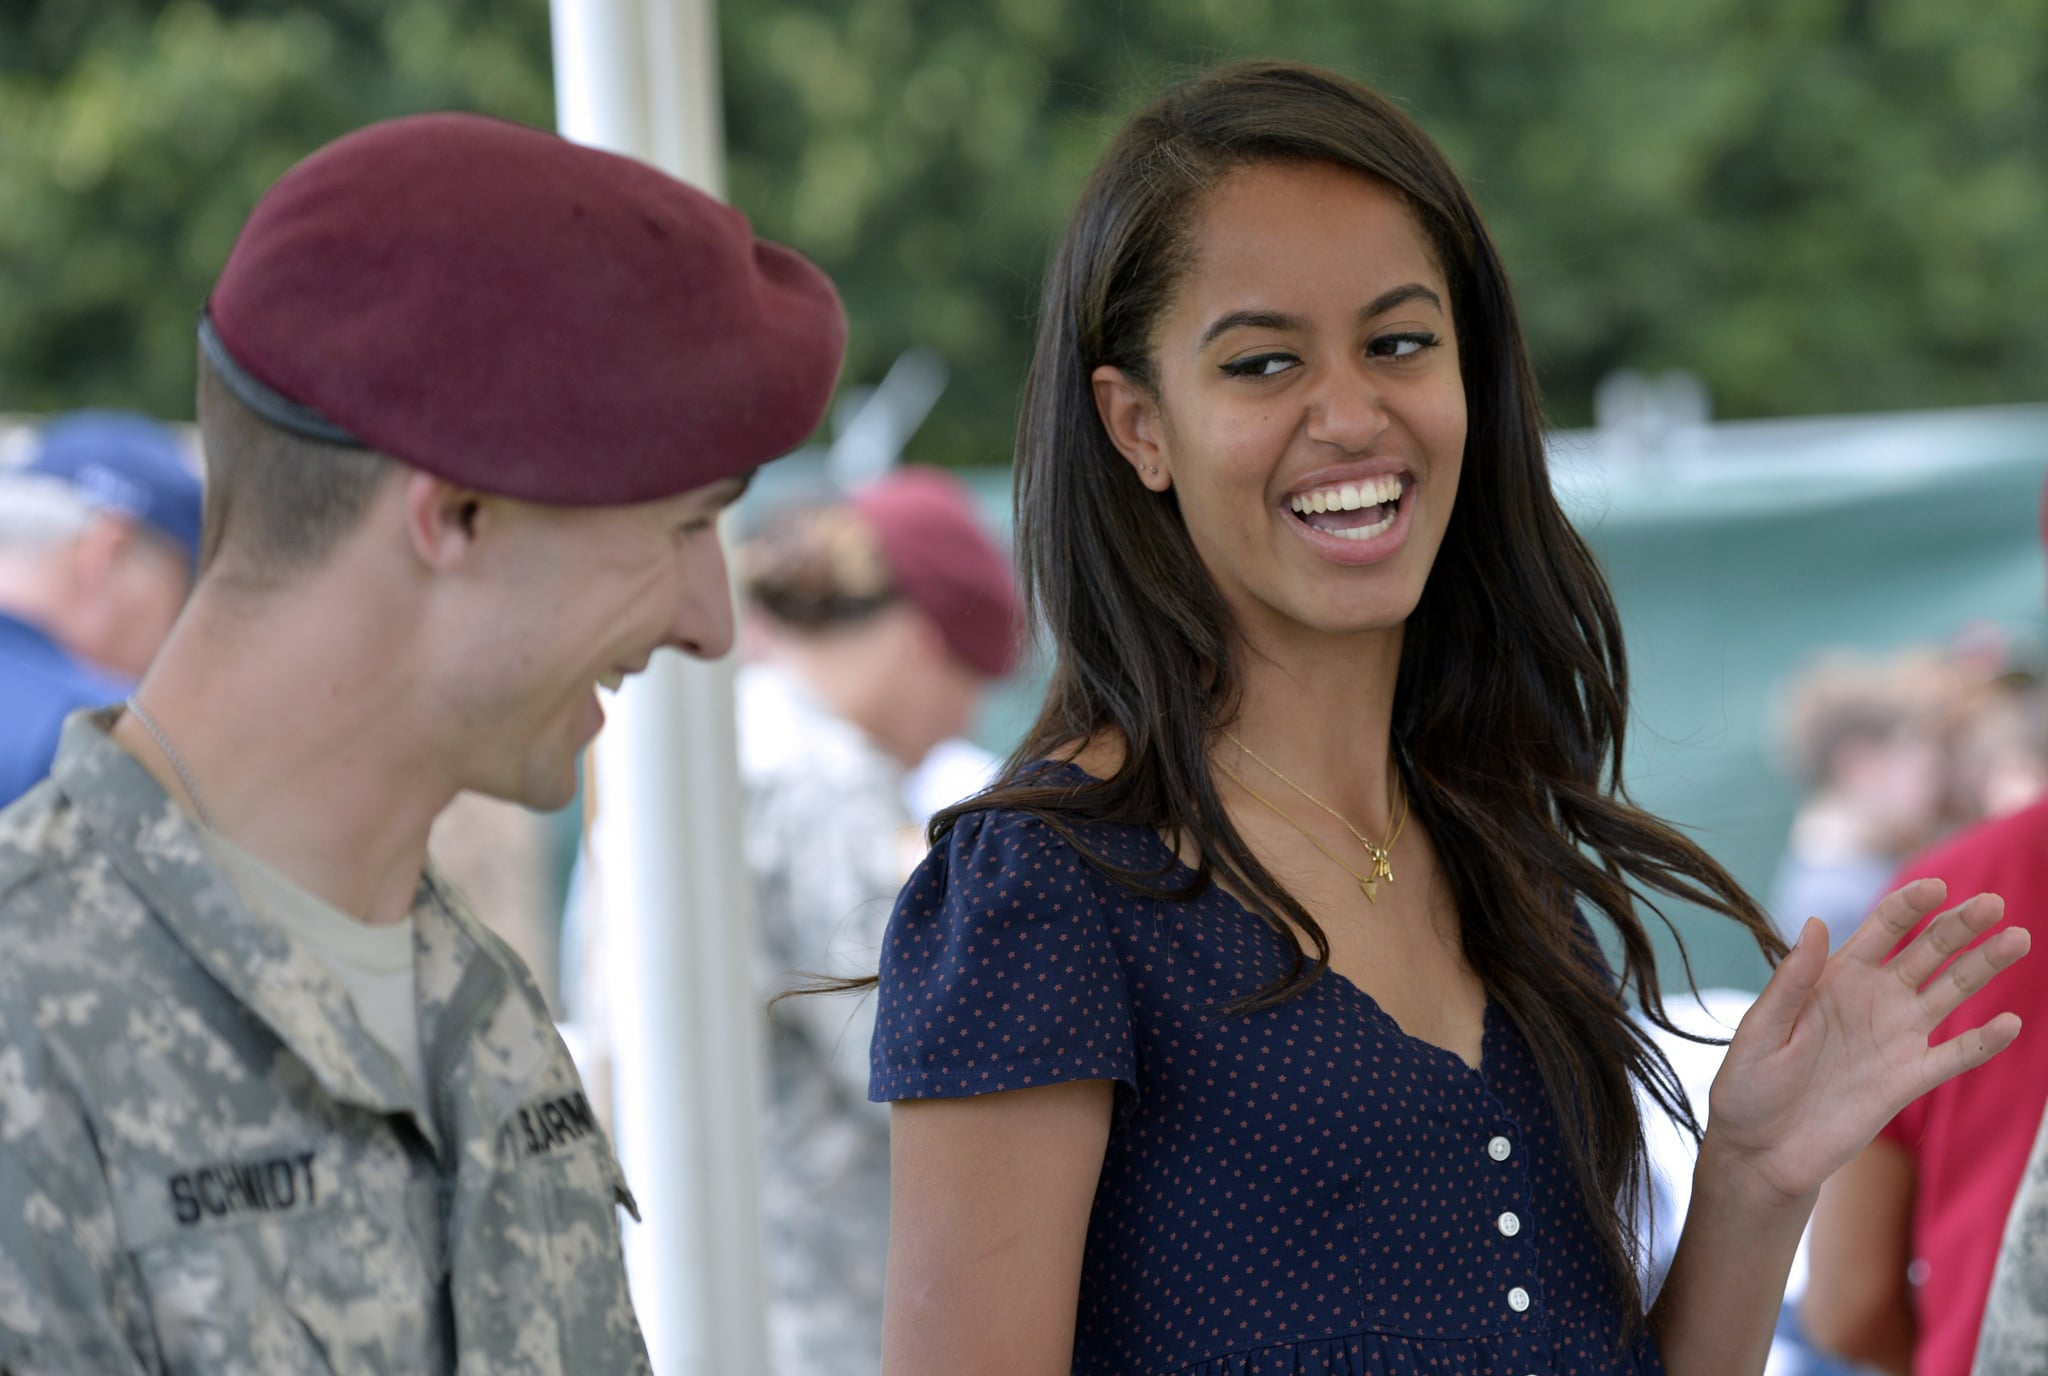 Malia Obama, daughter of US President, (R) smiles as she serves food during a lunch at the United States and Nato military base in Vicenza  on June 19, 2015 .   AFP PHOTO / ANDREAS SOLARO        (Photo credit should read ANDREAS SOLARO/AFP via Getty Images)